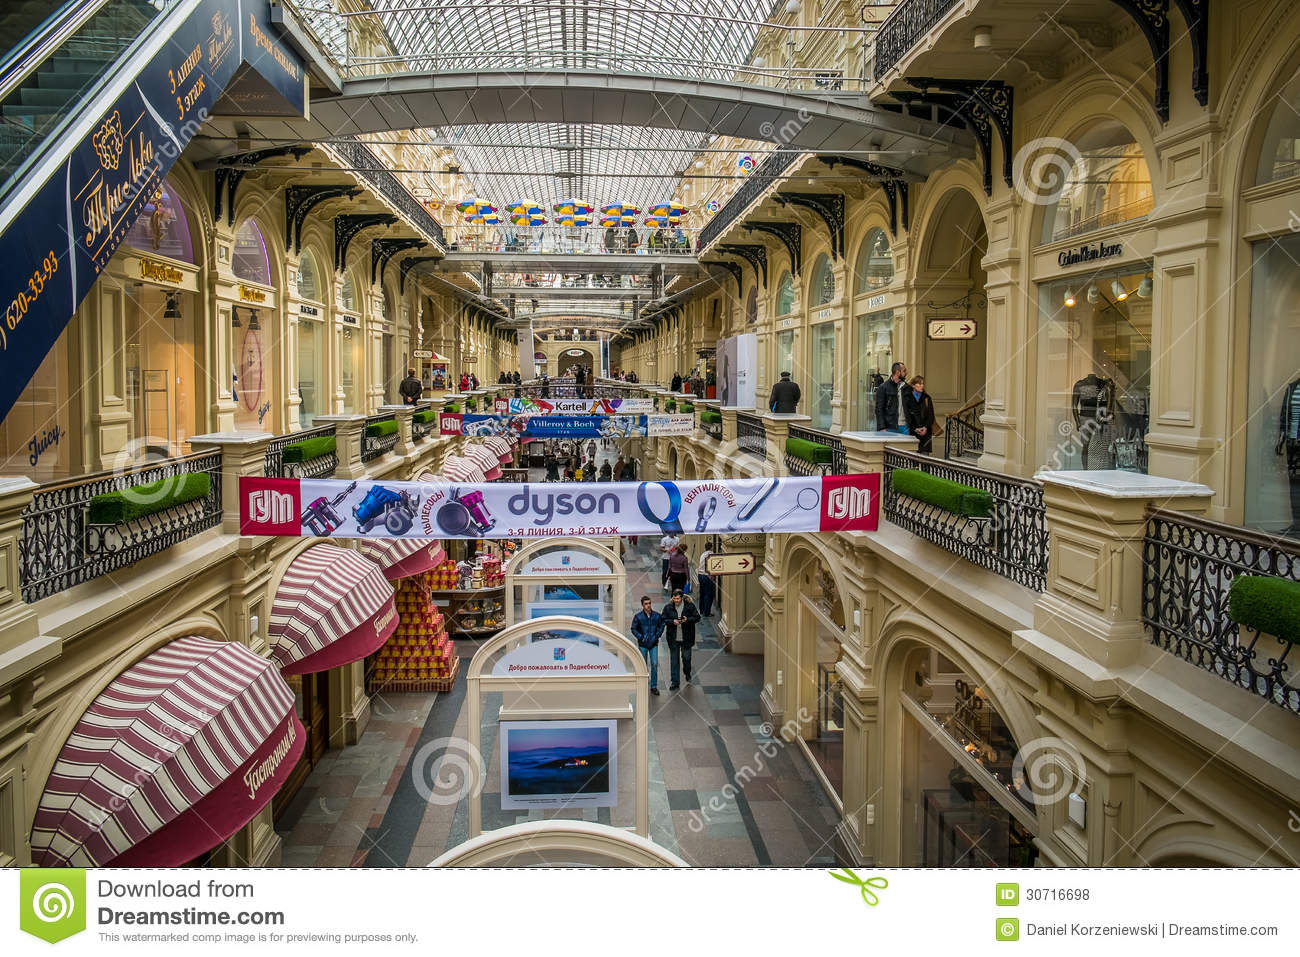 Gum shopping mall interior travelosophy picture